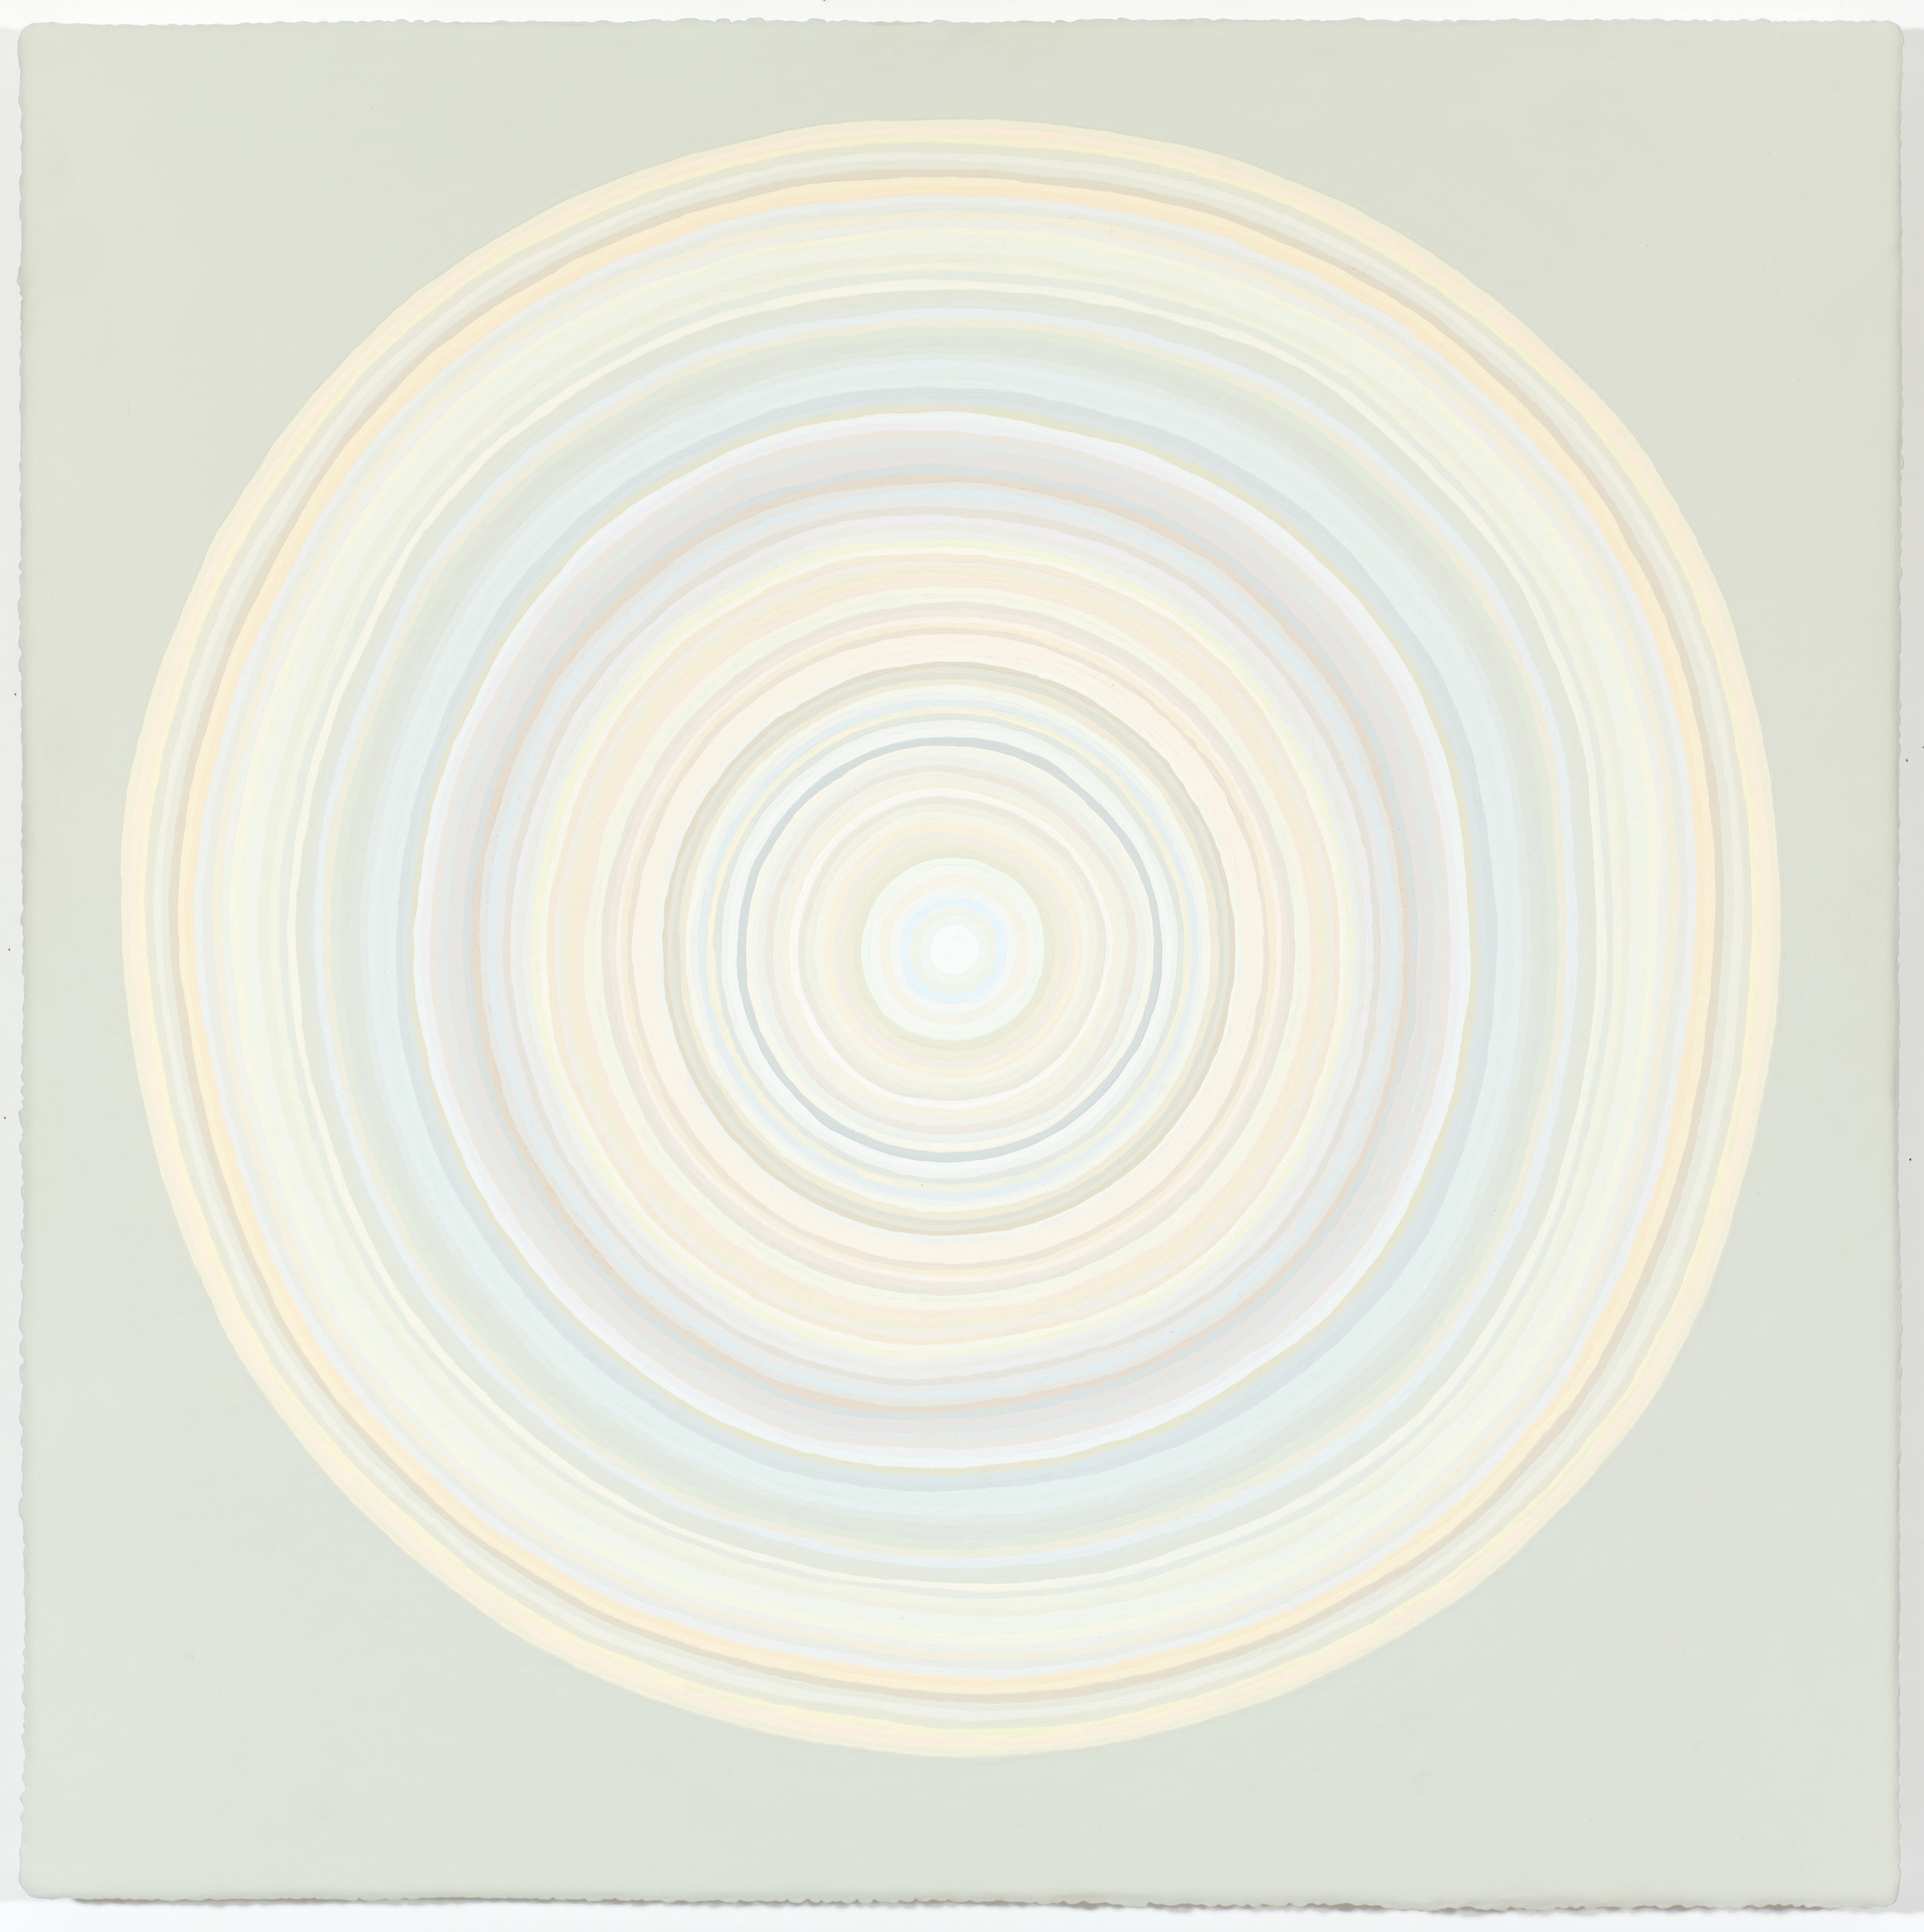 Concentric (100 Whites)